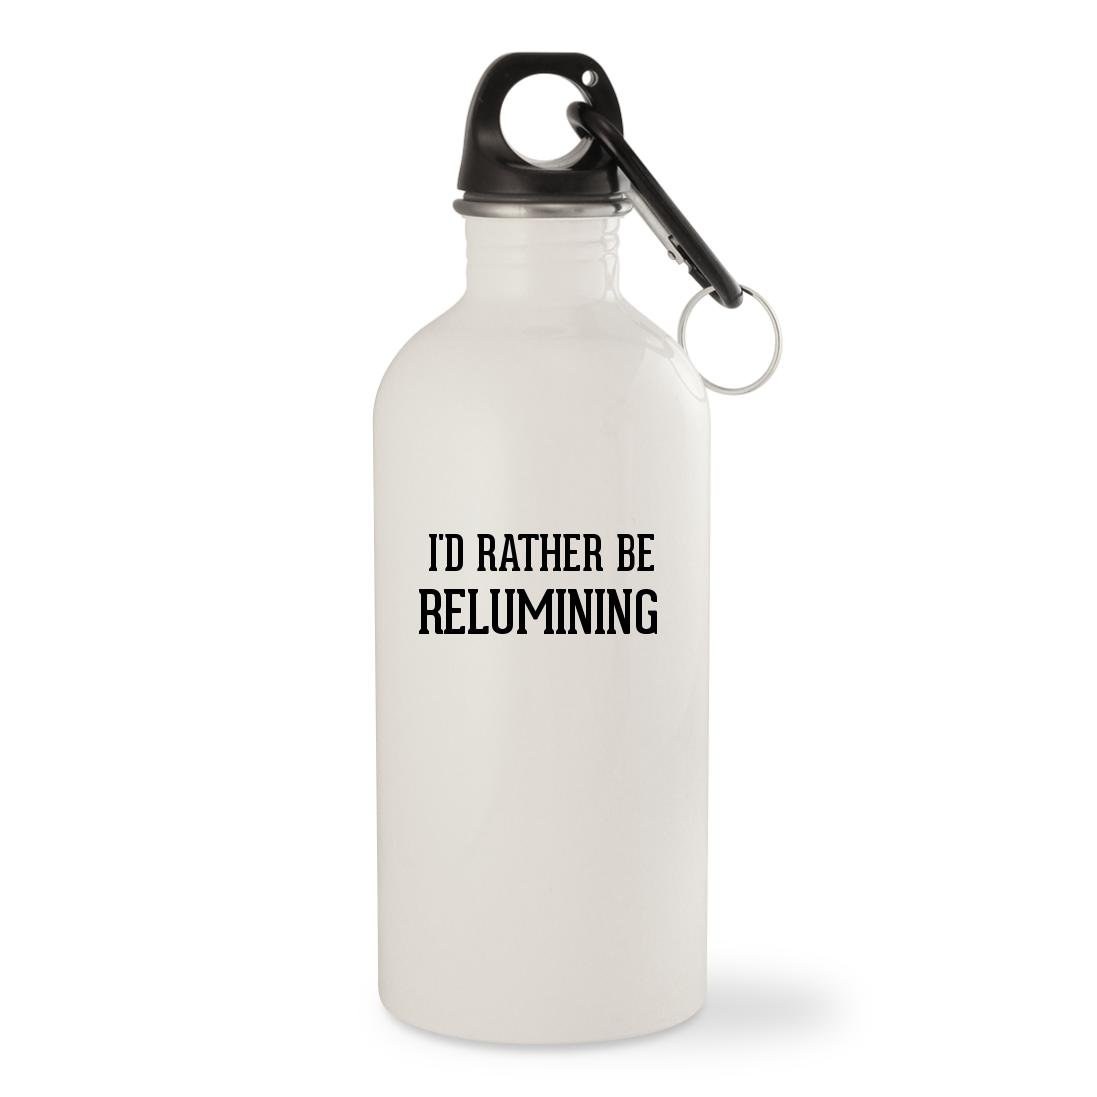 I'd Rather Be RELUMINING - White 20oz Stainless Steel Water Bottle with Carabiner